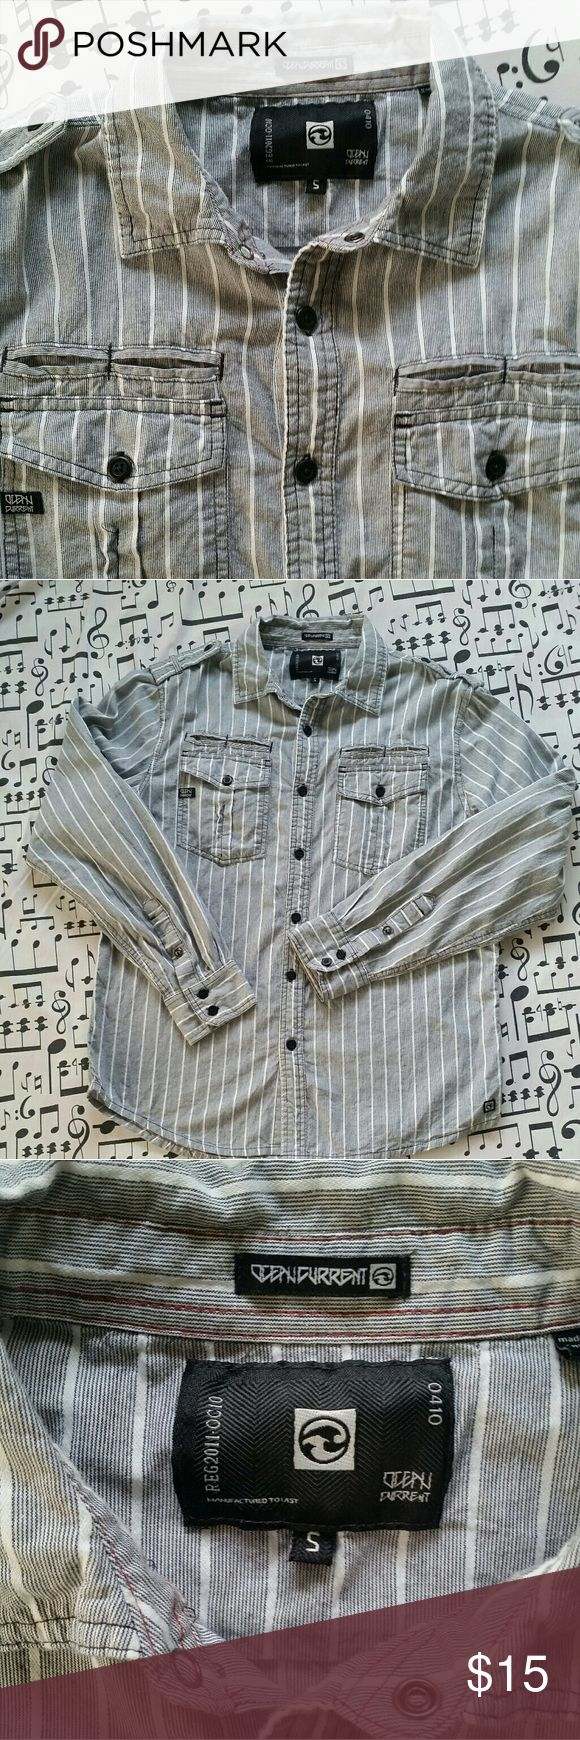 OCEAN CURRENT Men's Button Down Shirt Men's Grey with White Stripe Button Down Shirt  By Ocean Current Great Condition  Size S #shopmycloset #rockandrollclothing Ocean Current Shirts Casual Button Down Shirts